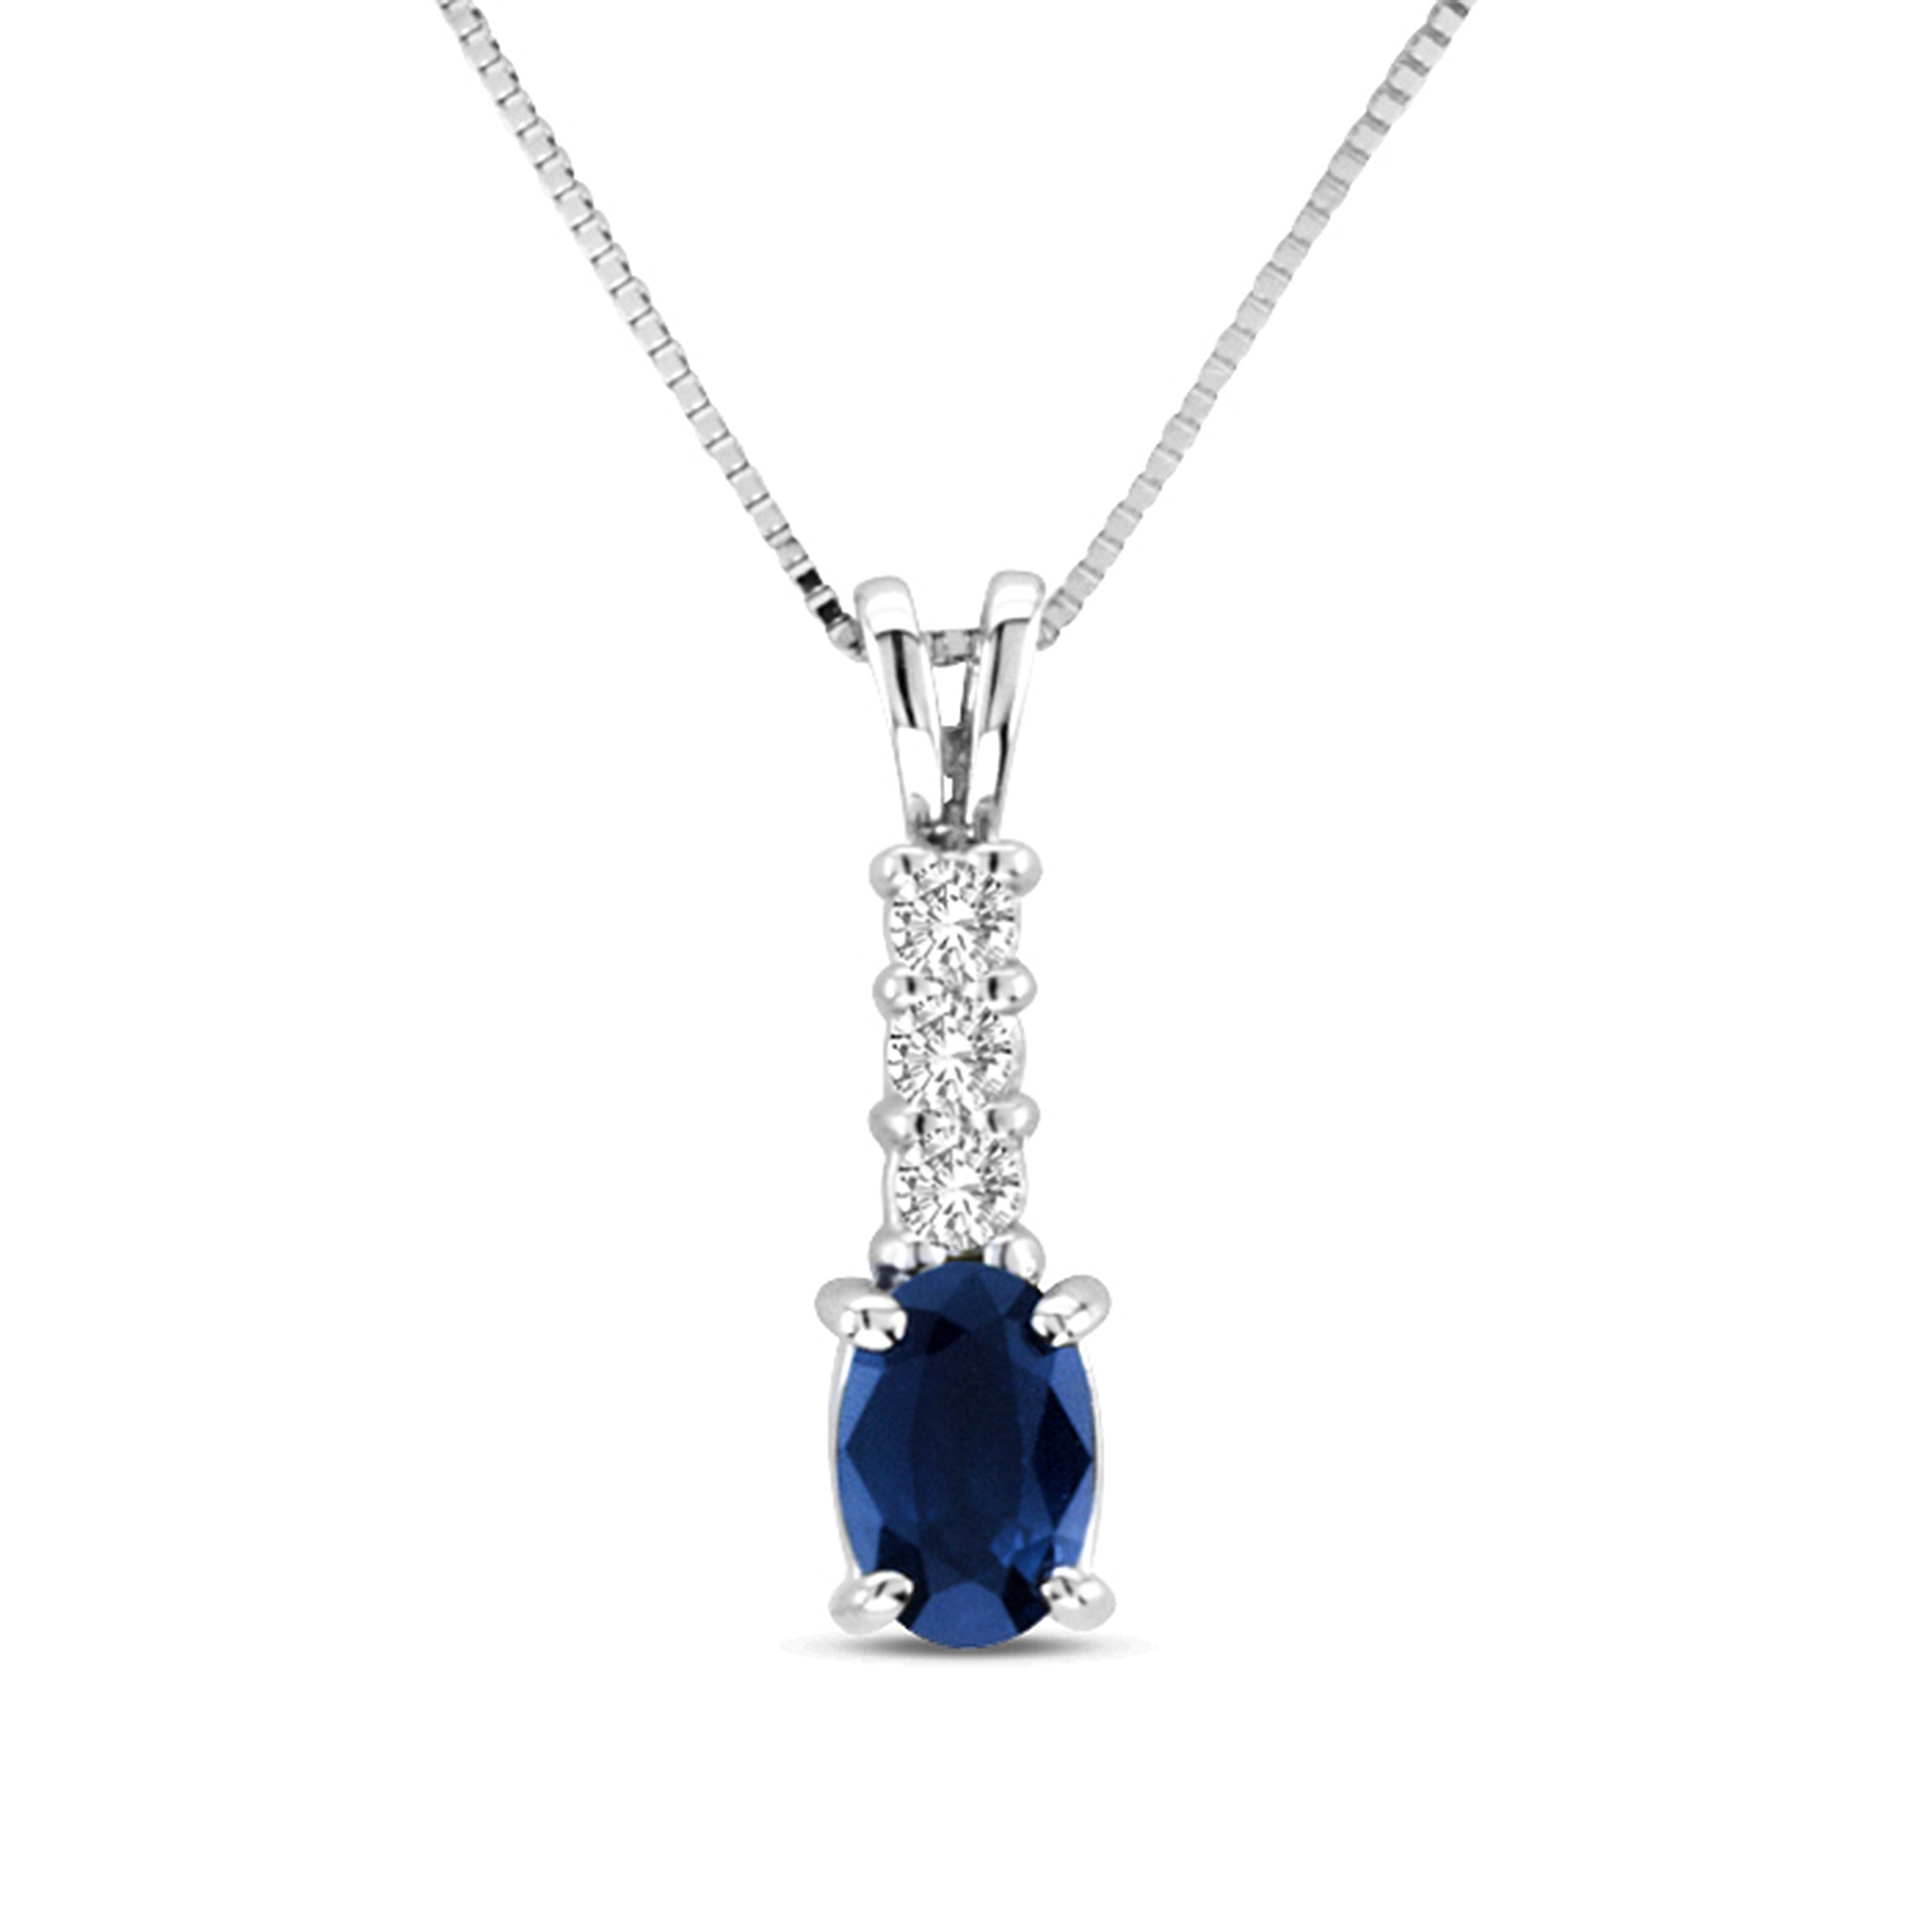 View 0.60cttw Sapphire and Diamond Pendant in 14K Gold